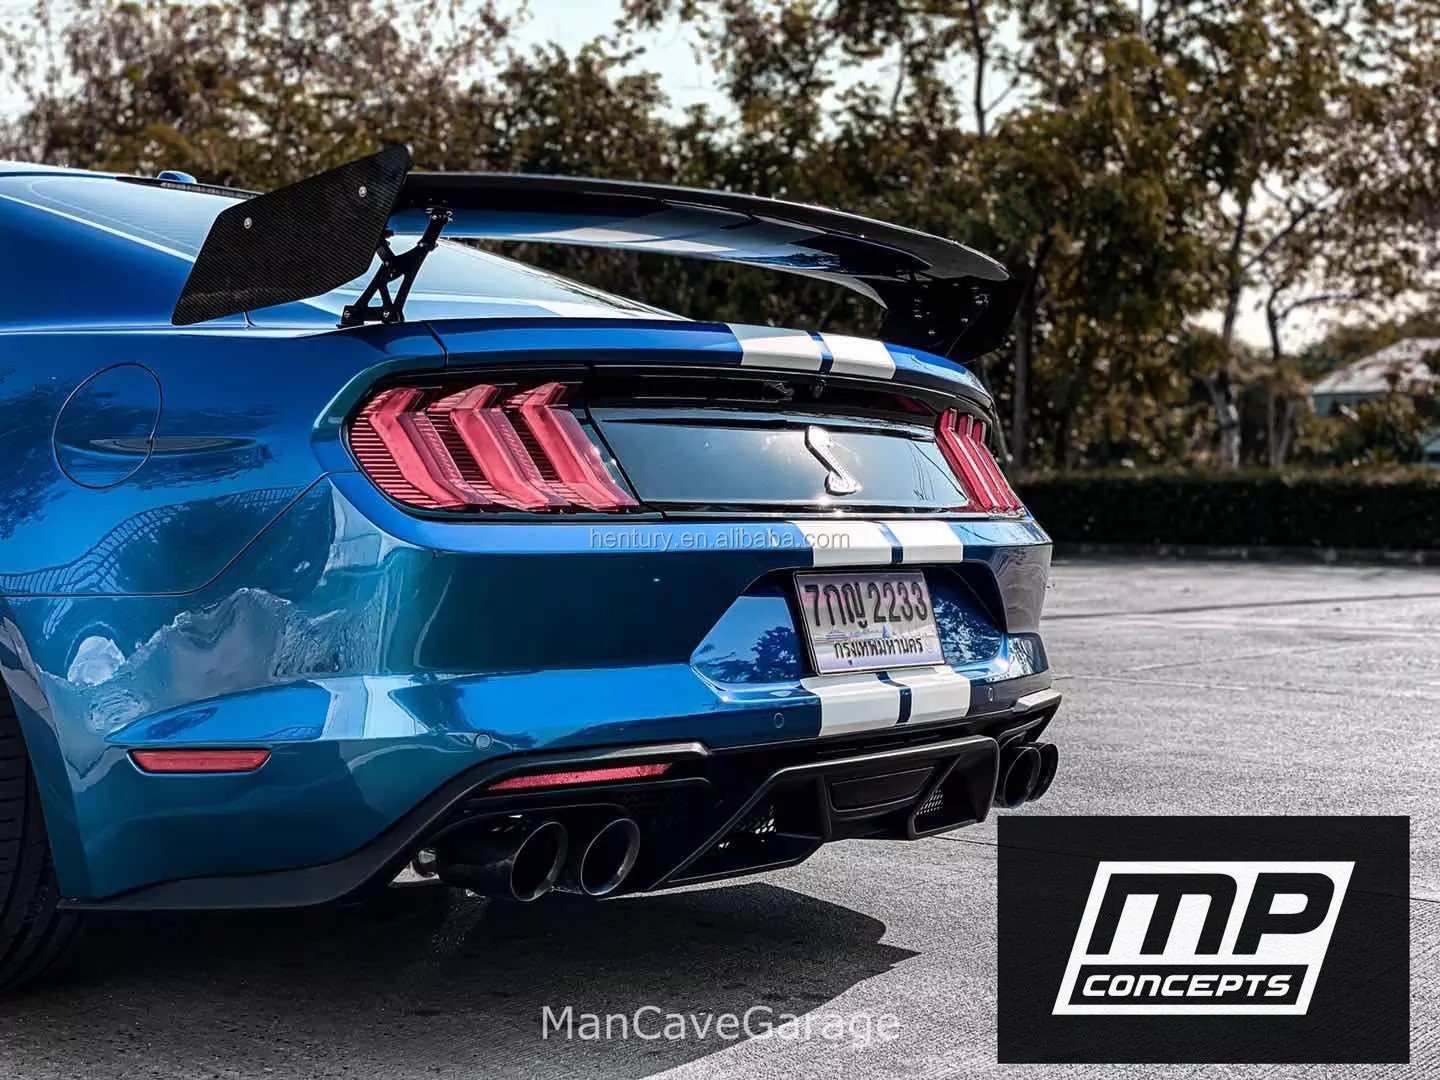 mp concepts quad exhaust gt500 rear diffuser with quad tips for mustang 18 19 mustang buy rear diffuser with quad tips product on alibaba com